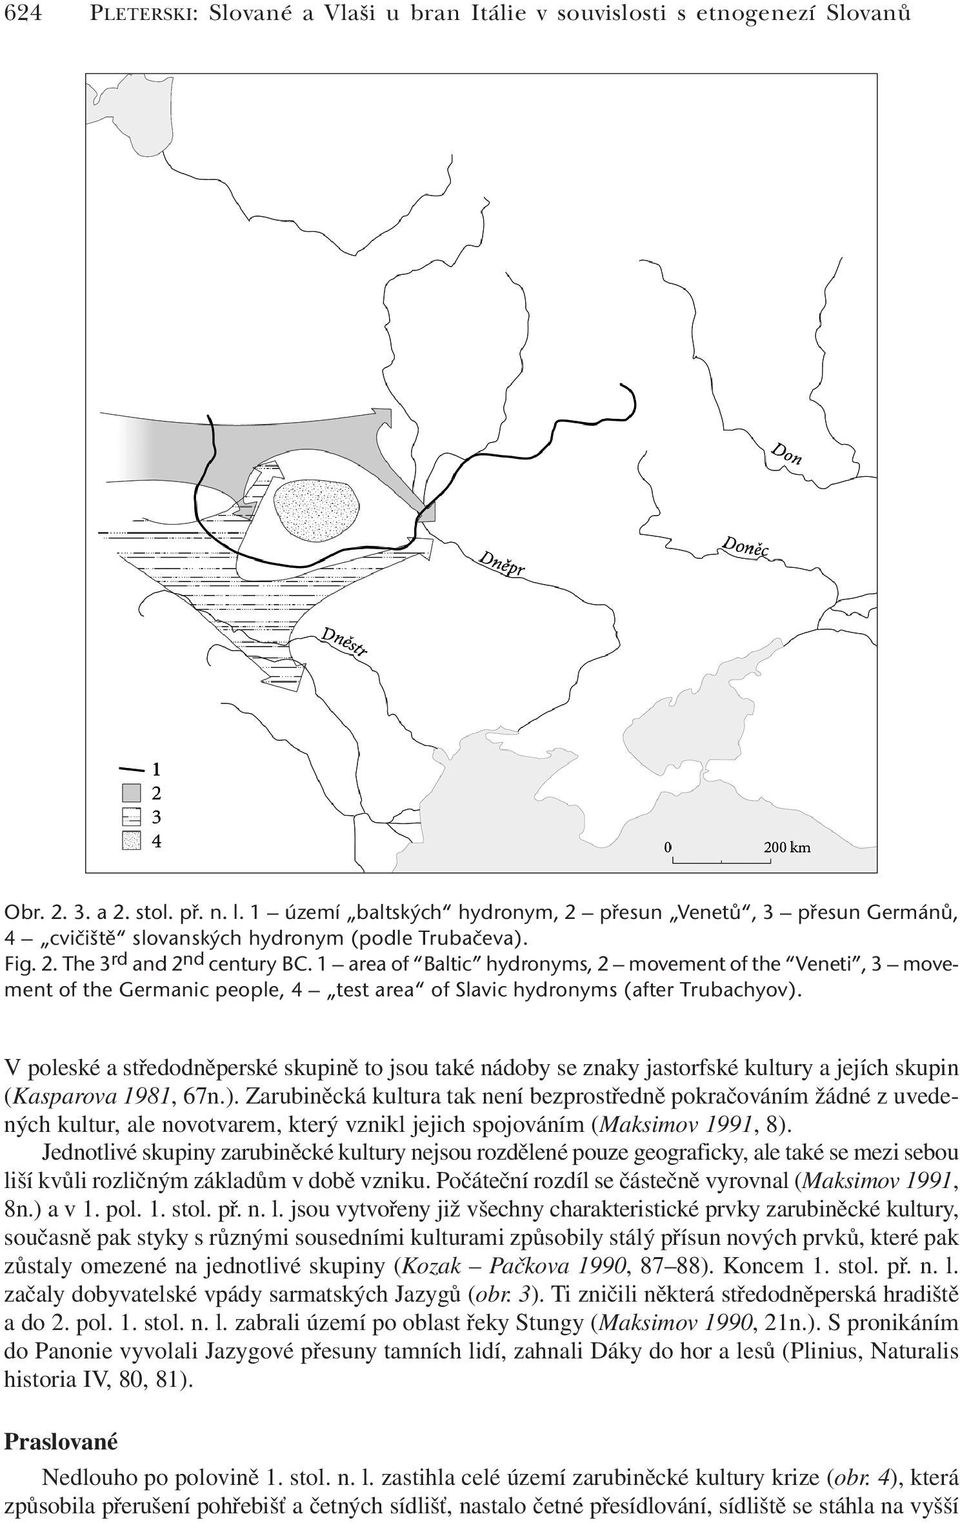 1 area of Baltic hydronyms, 2 movement of the Veneti, 3 movement of the Germanic people, 4 test area of Slavic hydronyms (after Trubachyov).